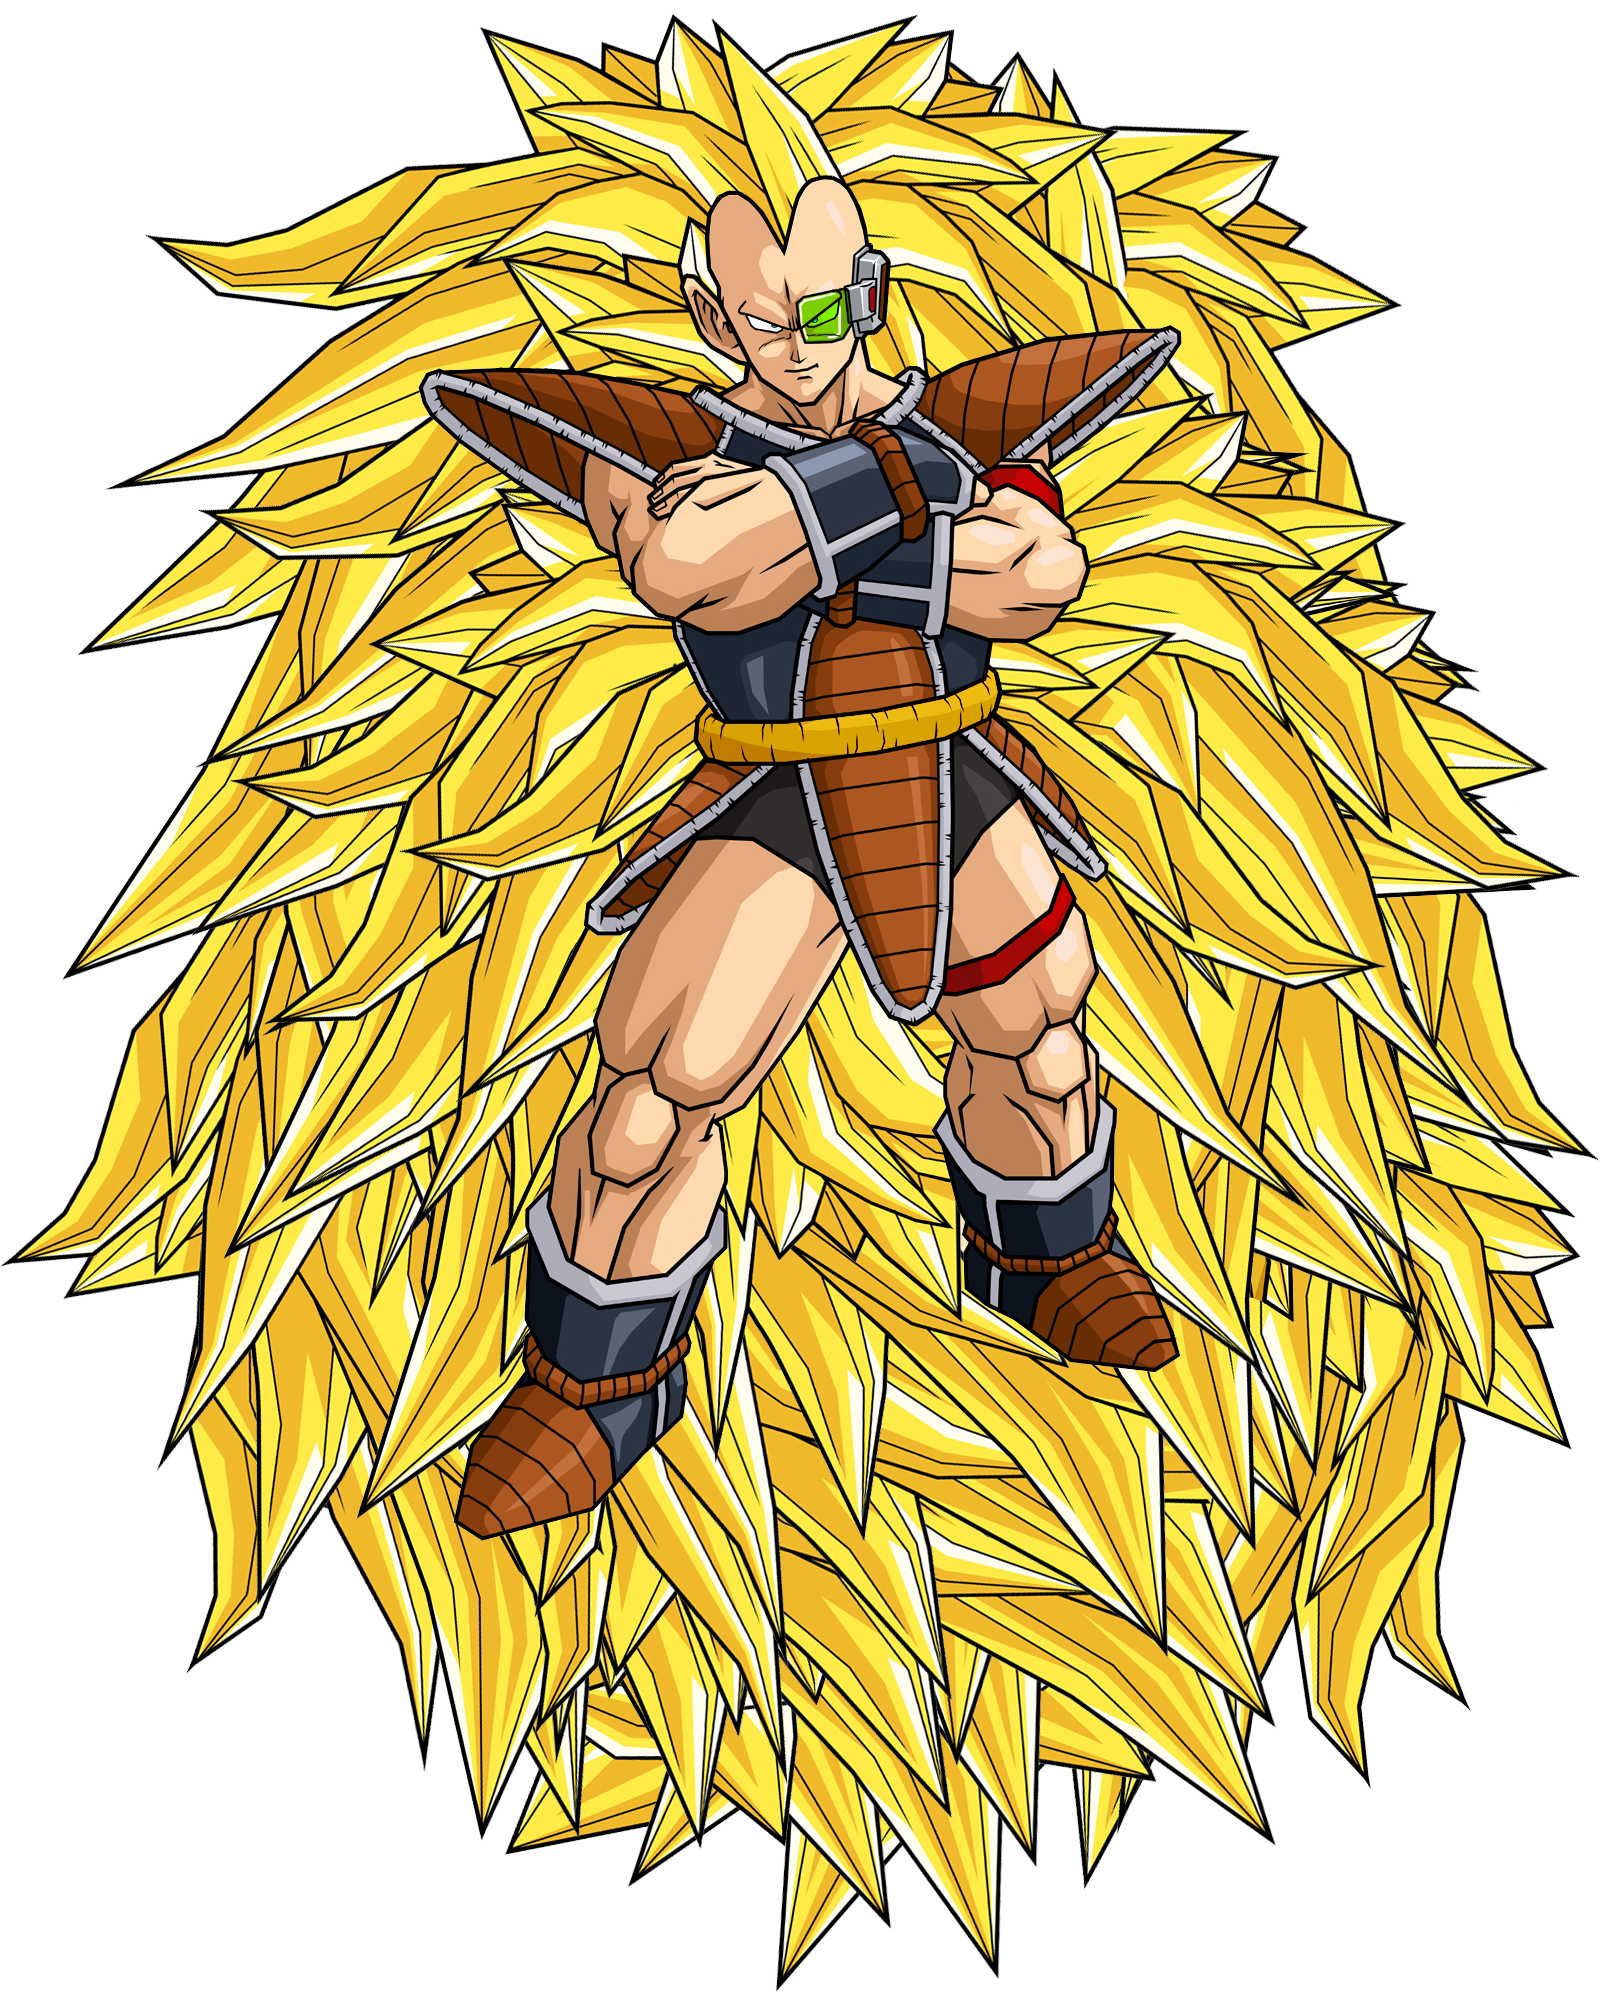 Super Saiyan 3 Raditz Dragon Ball Know Your Meme